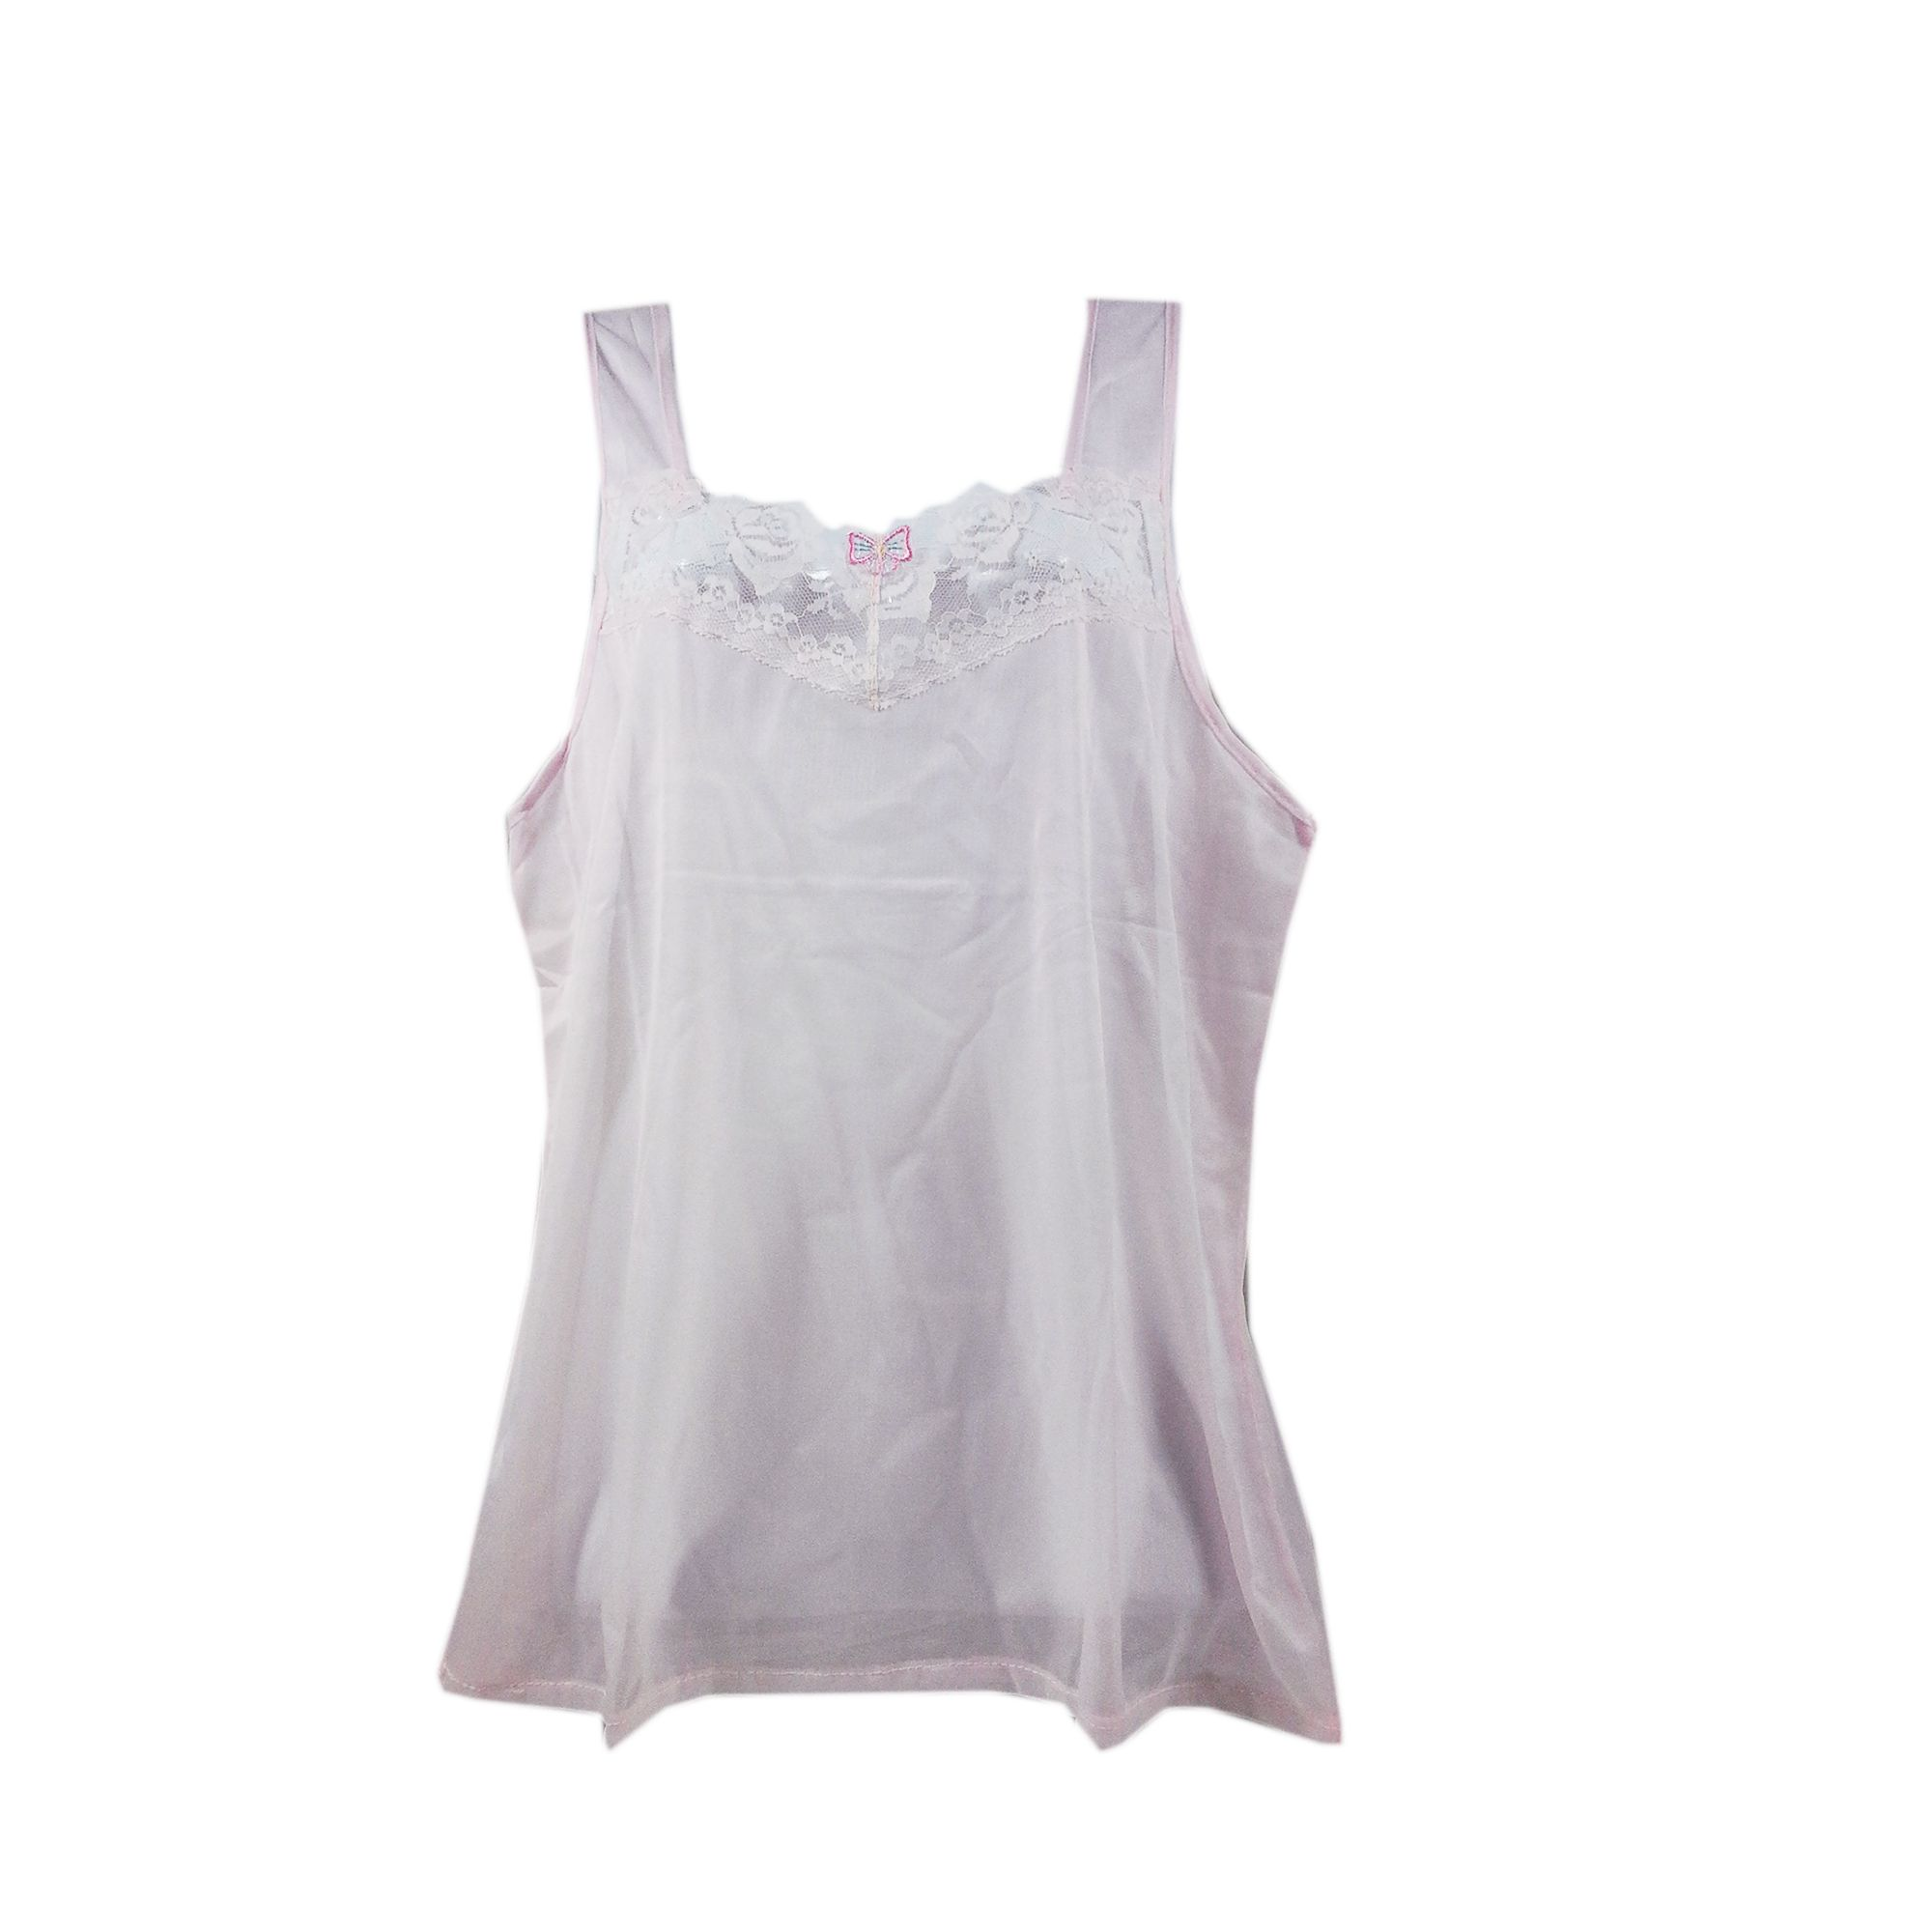 10c10c9cc56ff BOS05 Pink Silky New Nylon Blouse Lace Camisole Tank Top Women